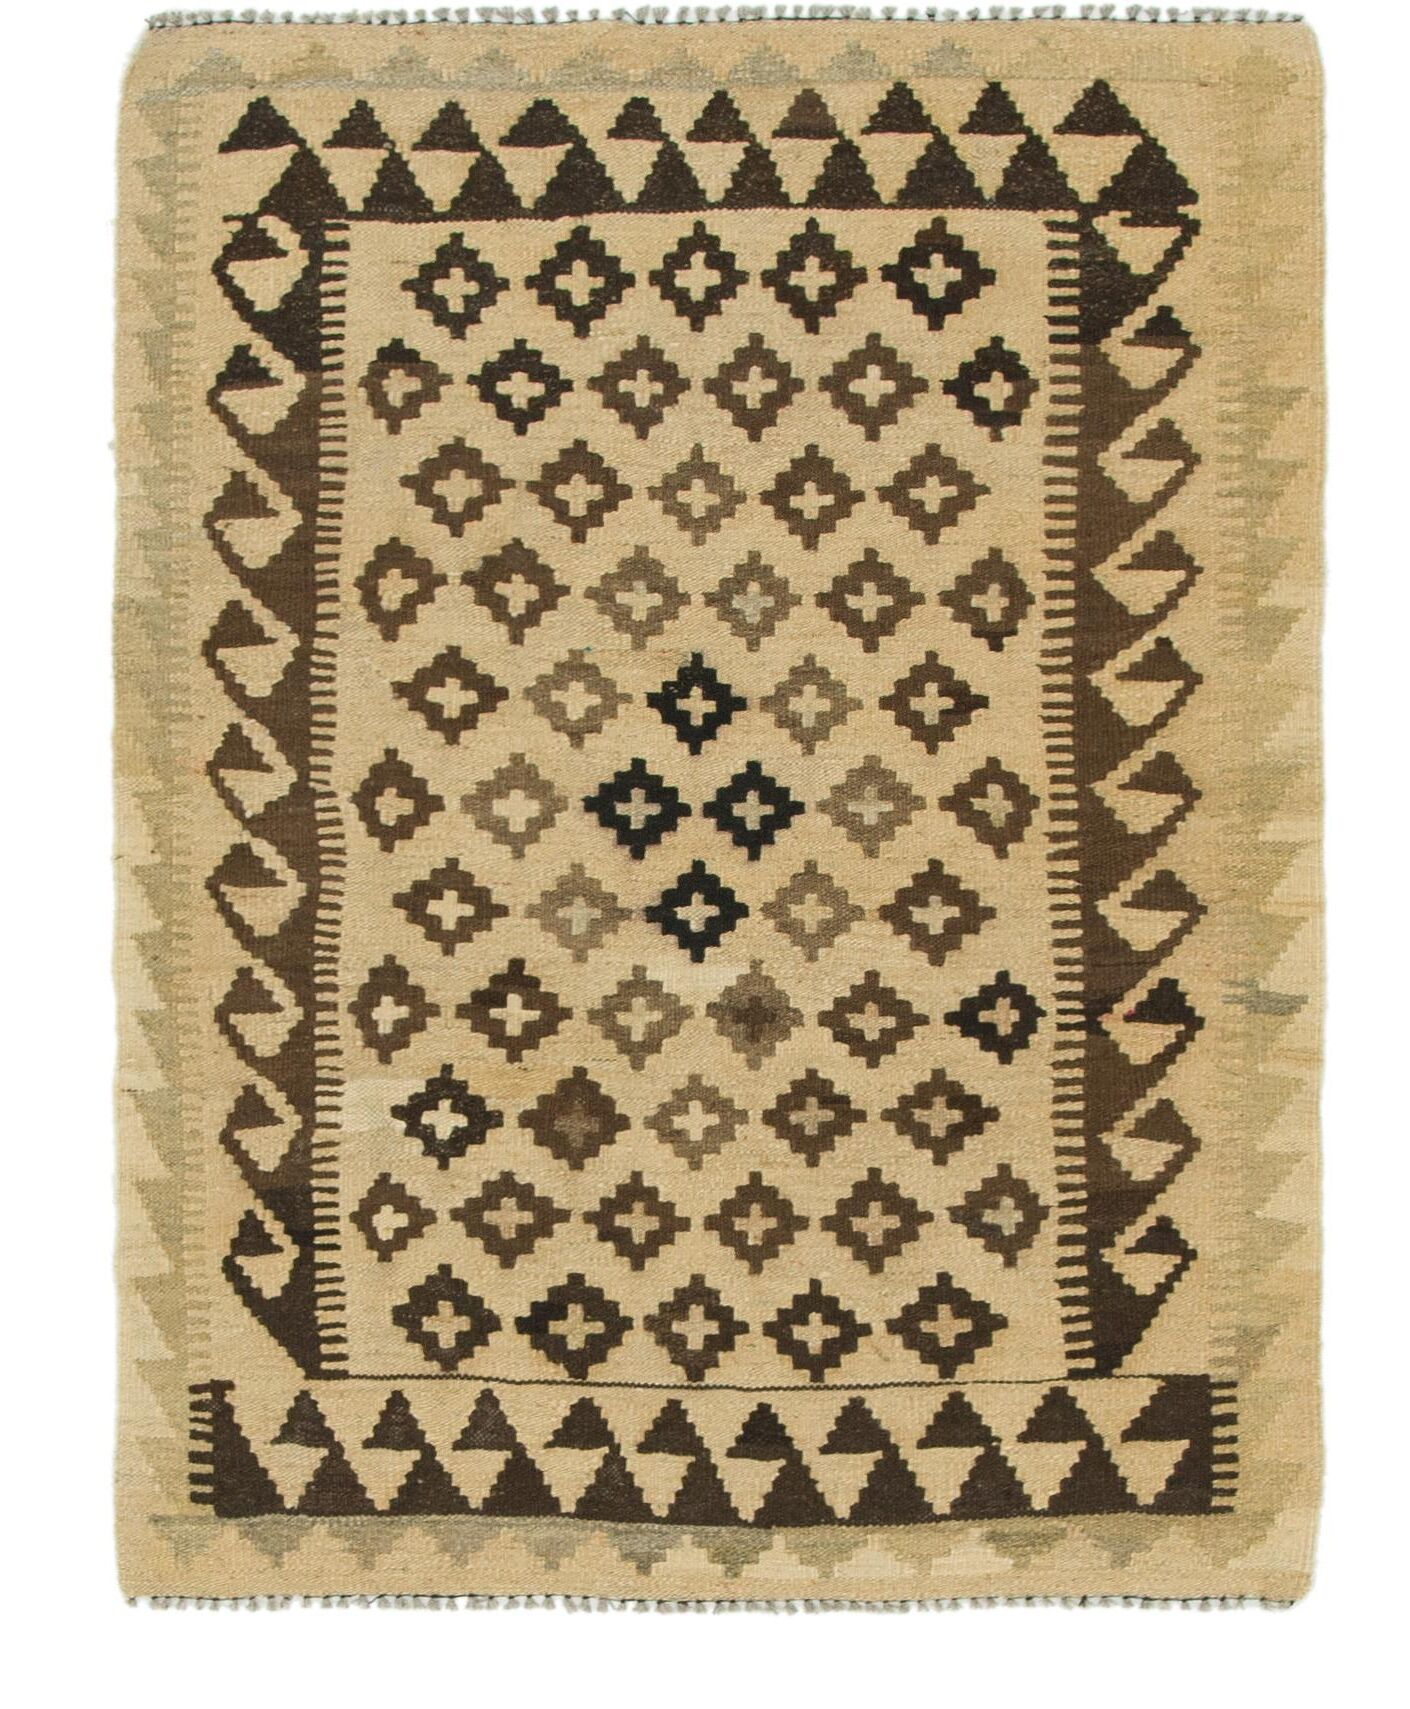 One-of-a-Kind Lorain Hand-Knotted Wool 3' x 4' Cream/Brown Area Rug